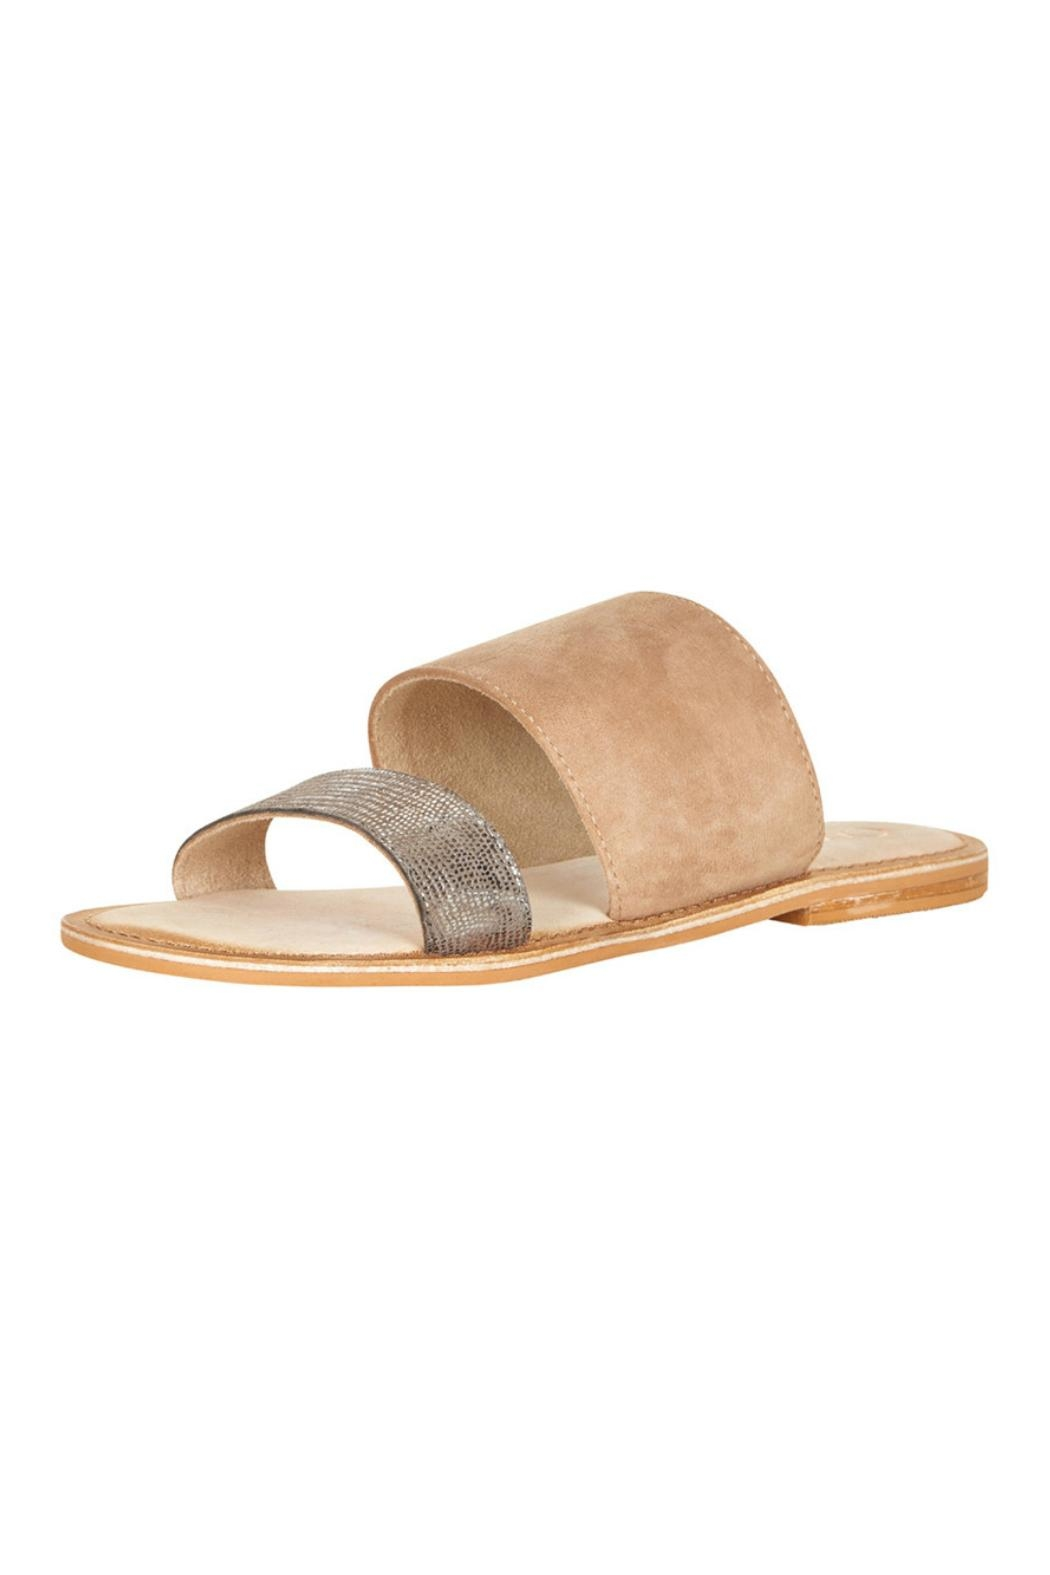 Cream Slide Sandal From Canada By Labelle Shoptiques Strape On Front Cropped Image